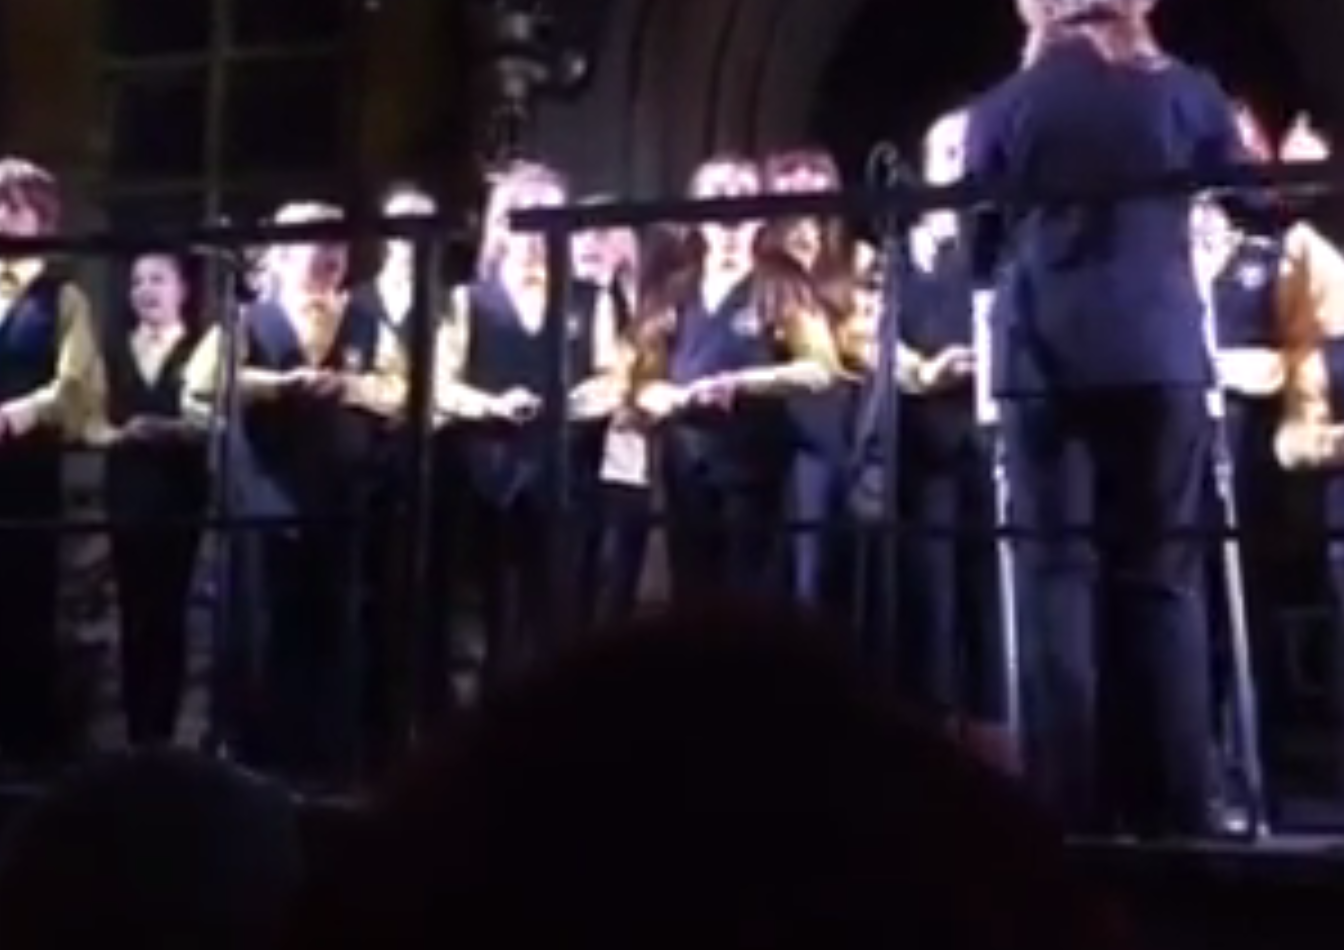 Star Struck perform at the Inverness Christmas light switch on